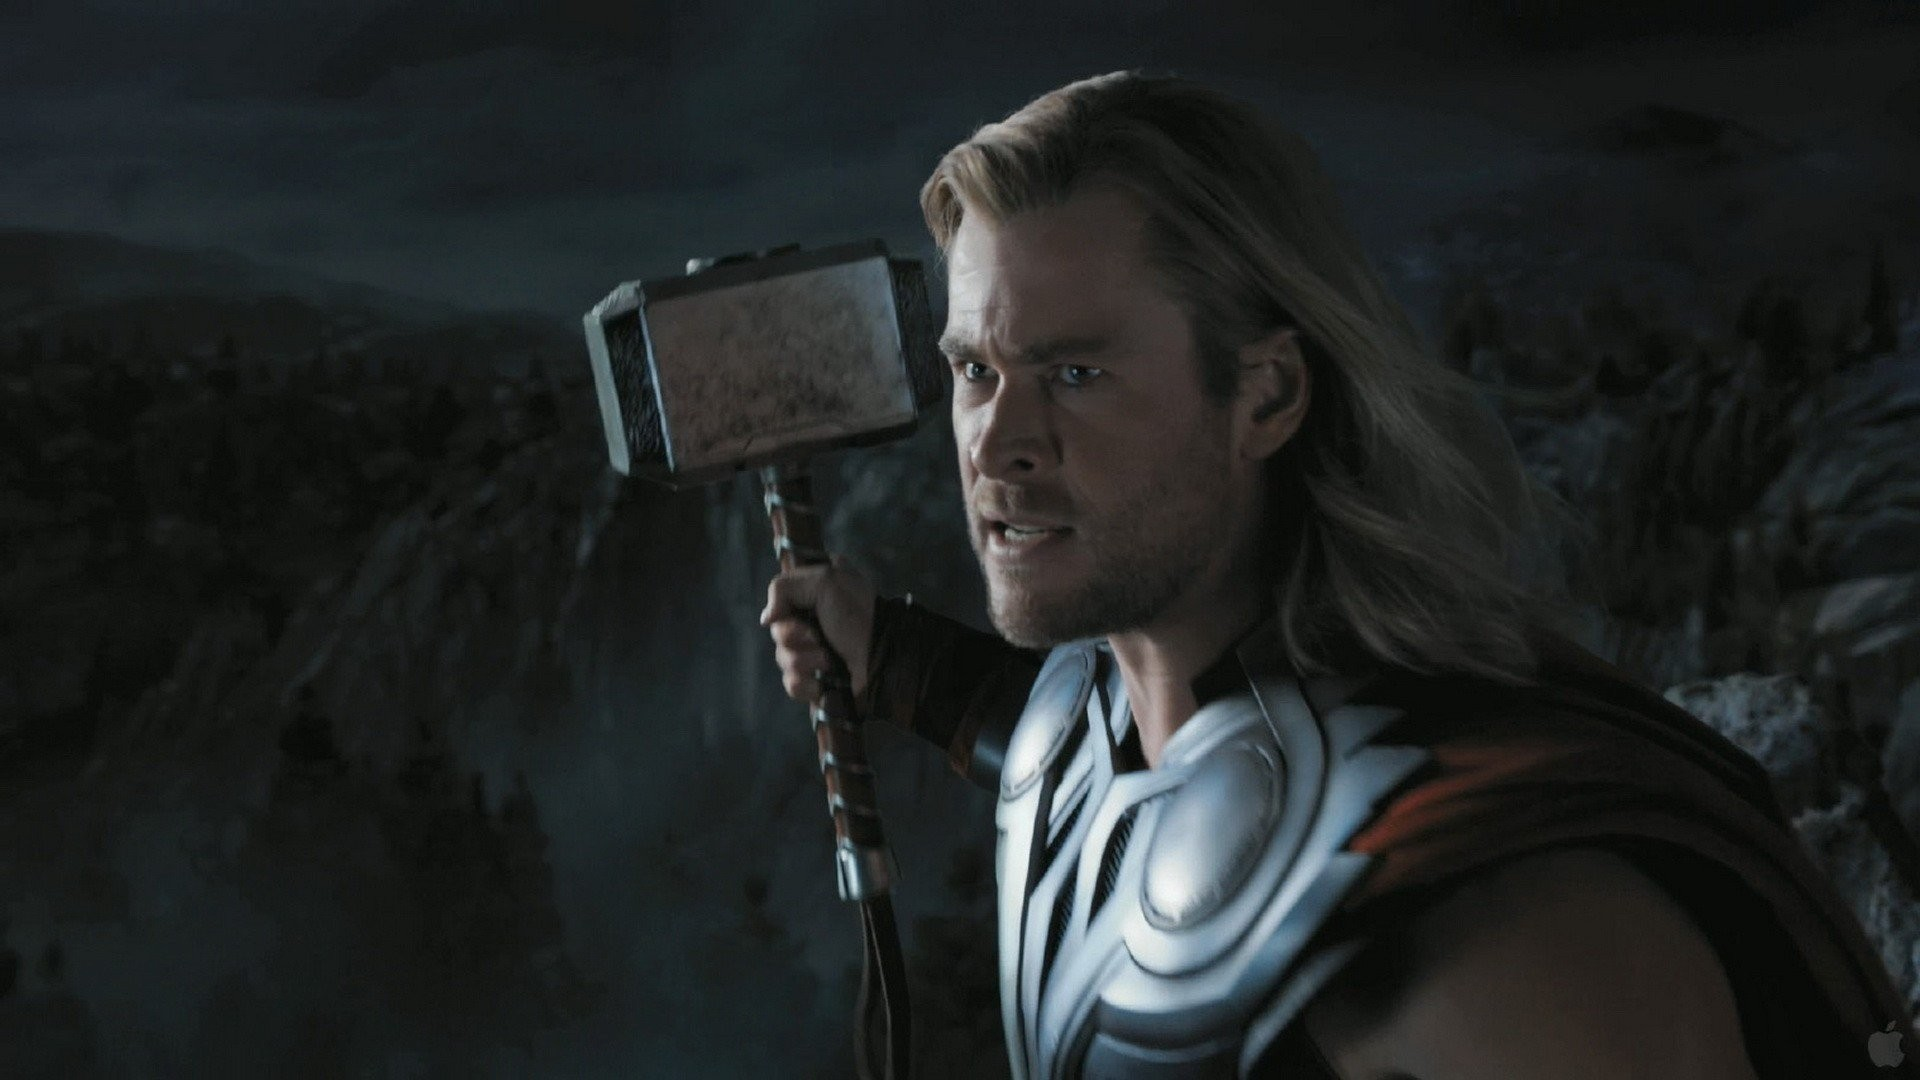 1920x1200 Thor2 Wallpapers Desktop Backgrounds Hd Free Backgrounds4 Thor 2 And